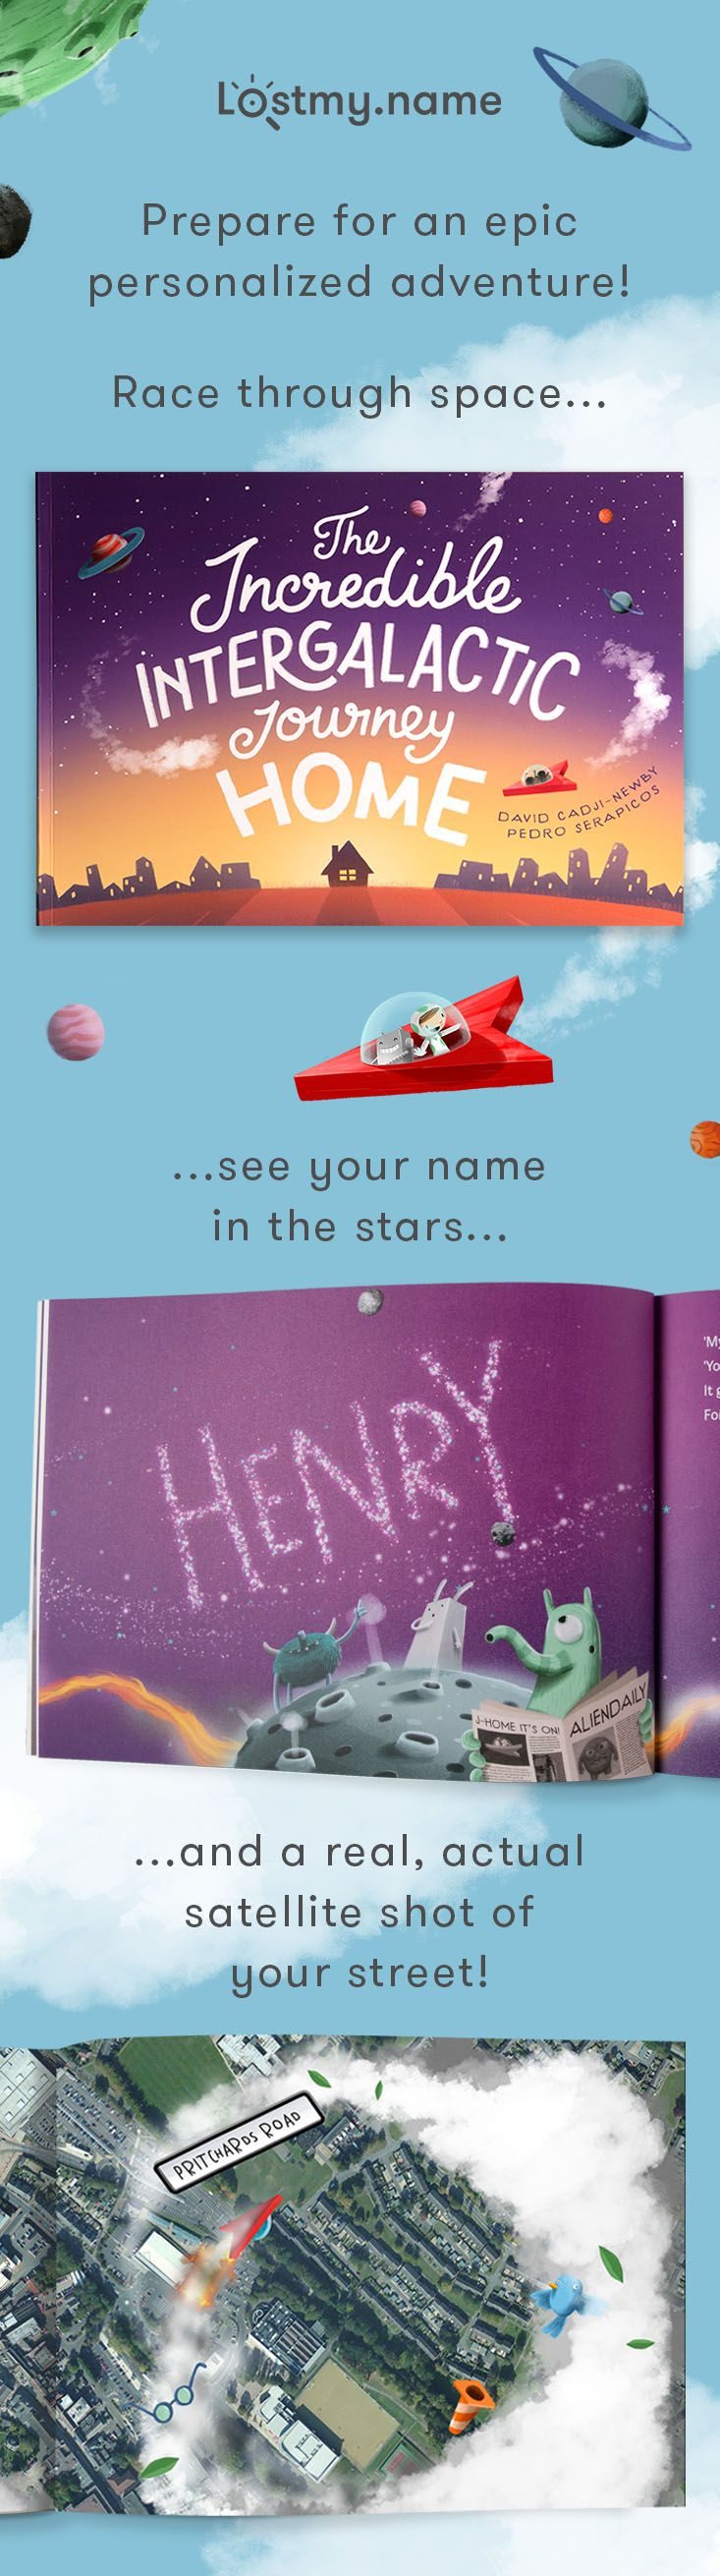 Take a child on an unforgettable adventure with The Incredible Intergalactic Journey Home. This astonishing personalized storybook whooshes your child through the galaxy (to see their name in the stars!) before delivering them to their front door (where astonishing satellite imagery of their actual home awaits)! You can make it in seconds and get it delivered anywhere on planet Earth for free.